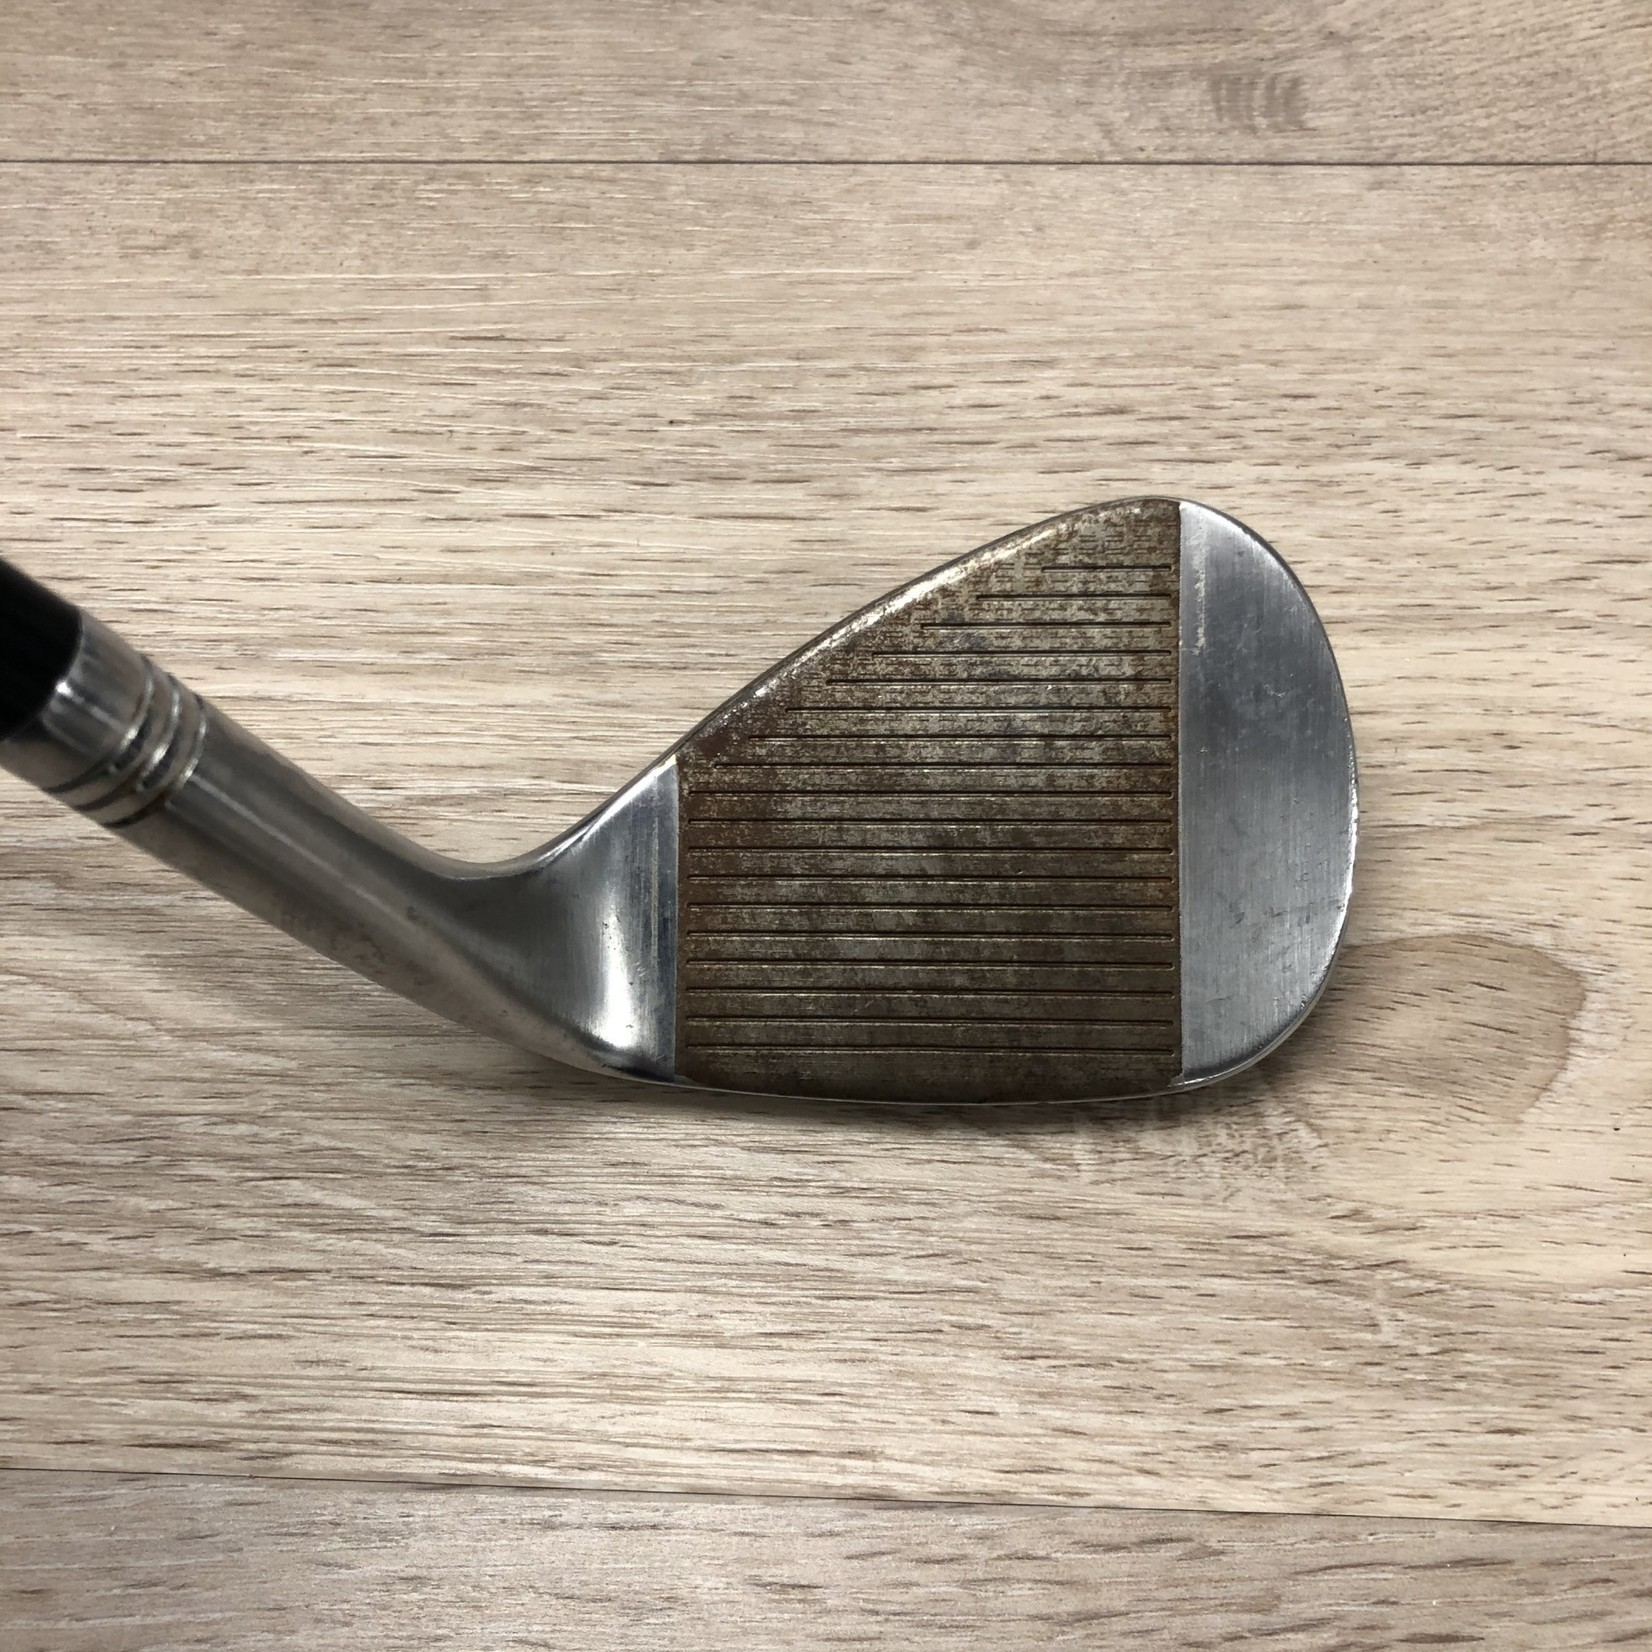 TaylorMade Taylormade MG2 Wedge 60* 10* (LH)